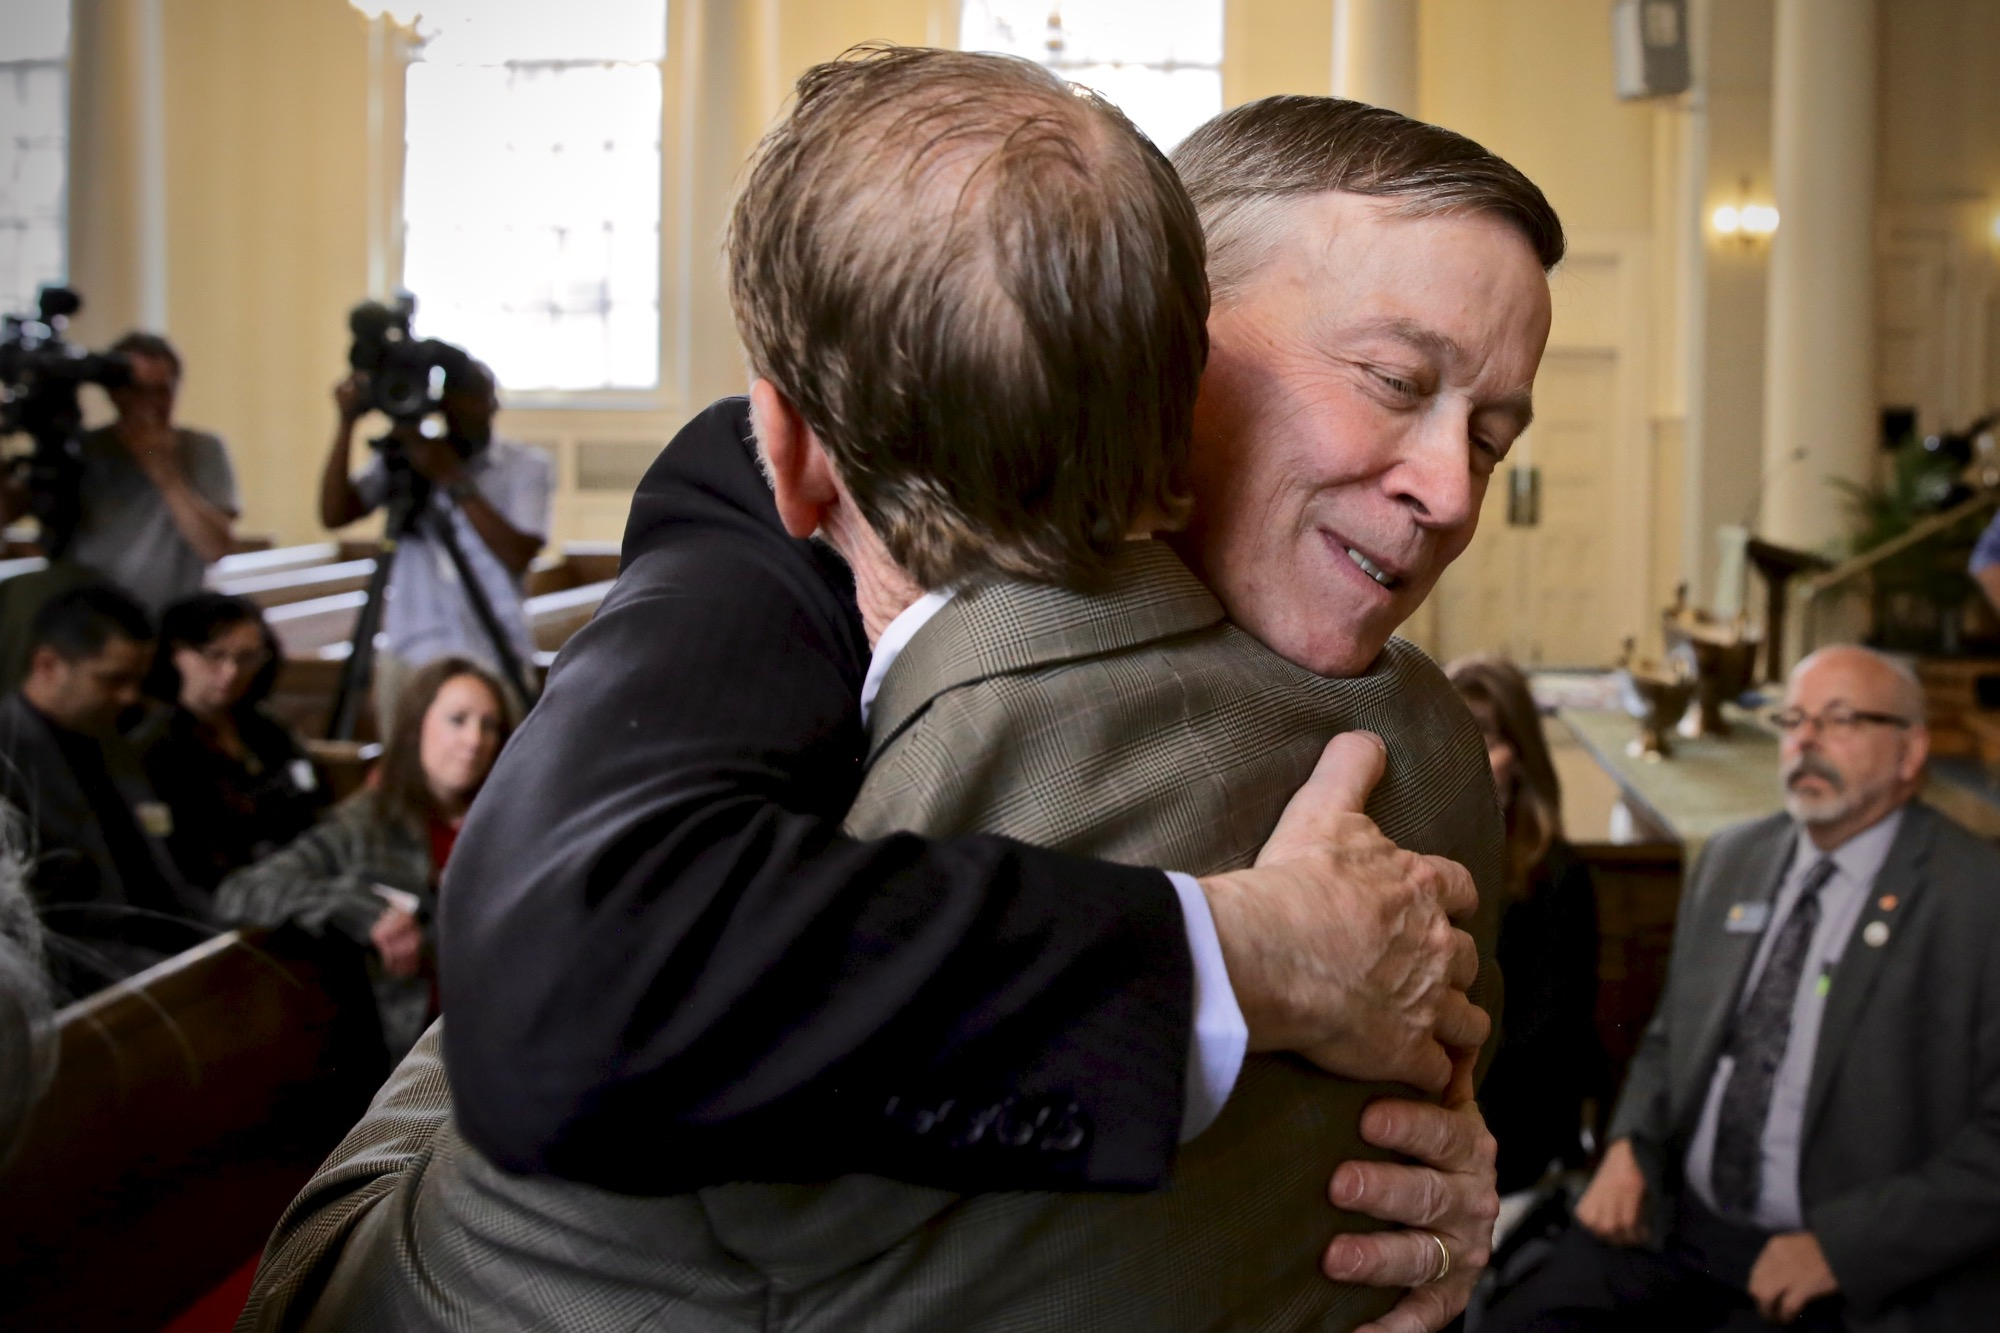 """<p> <style type=""""text/css"""">p.p1 {margin: 0.0px 0.0px 0.0px 0.0px; font: 12.0px 'Helvetica Neue'} </style> Presidential candidate and former Colorado Gov. John Hickenlooperembraces Michael Davis as he meets with the families of victims of mass shootings on Tuesday at First Baptist Church in downtown Denver. Michael Davis and his wife Desiree, who was also at the gathering, are the parents of Claire Davis, who was killed in a shooting at Arapahoe High School.</p>"""